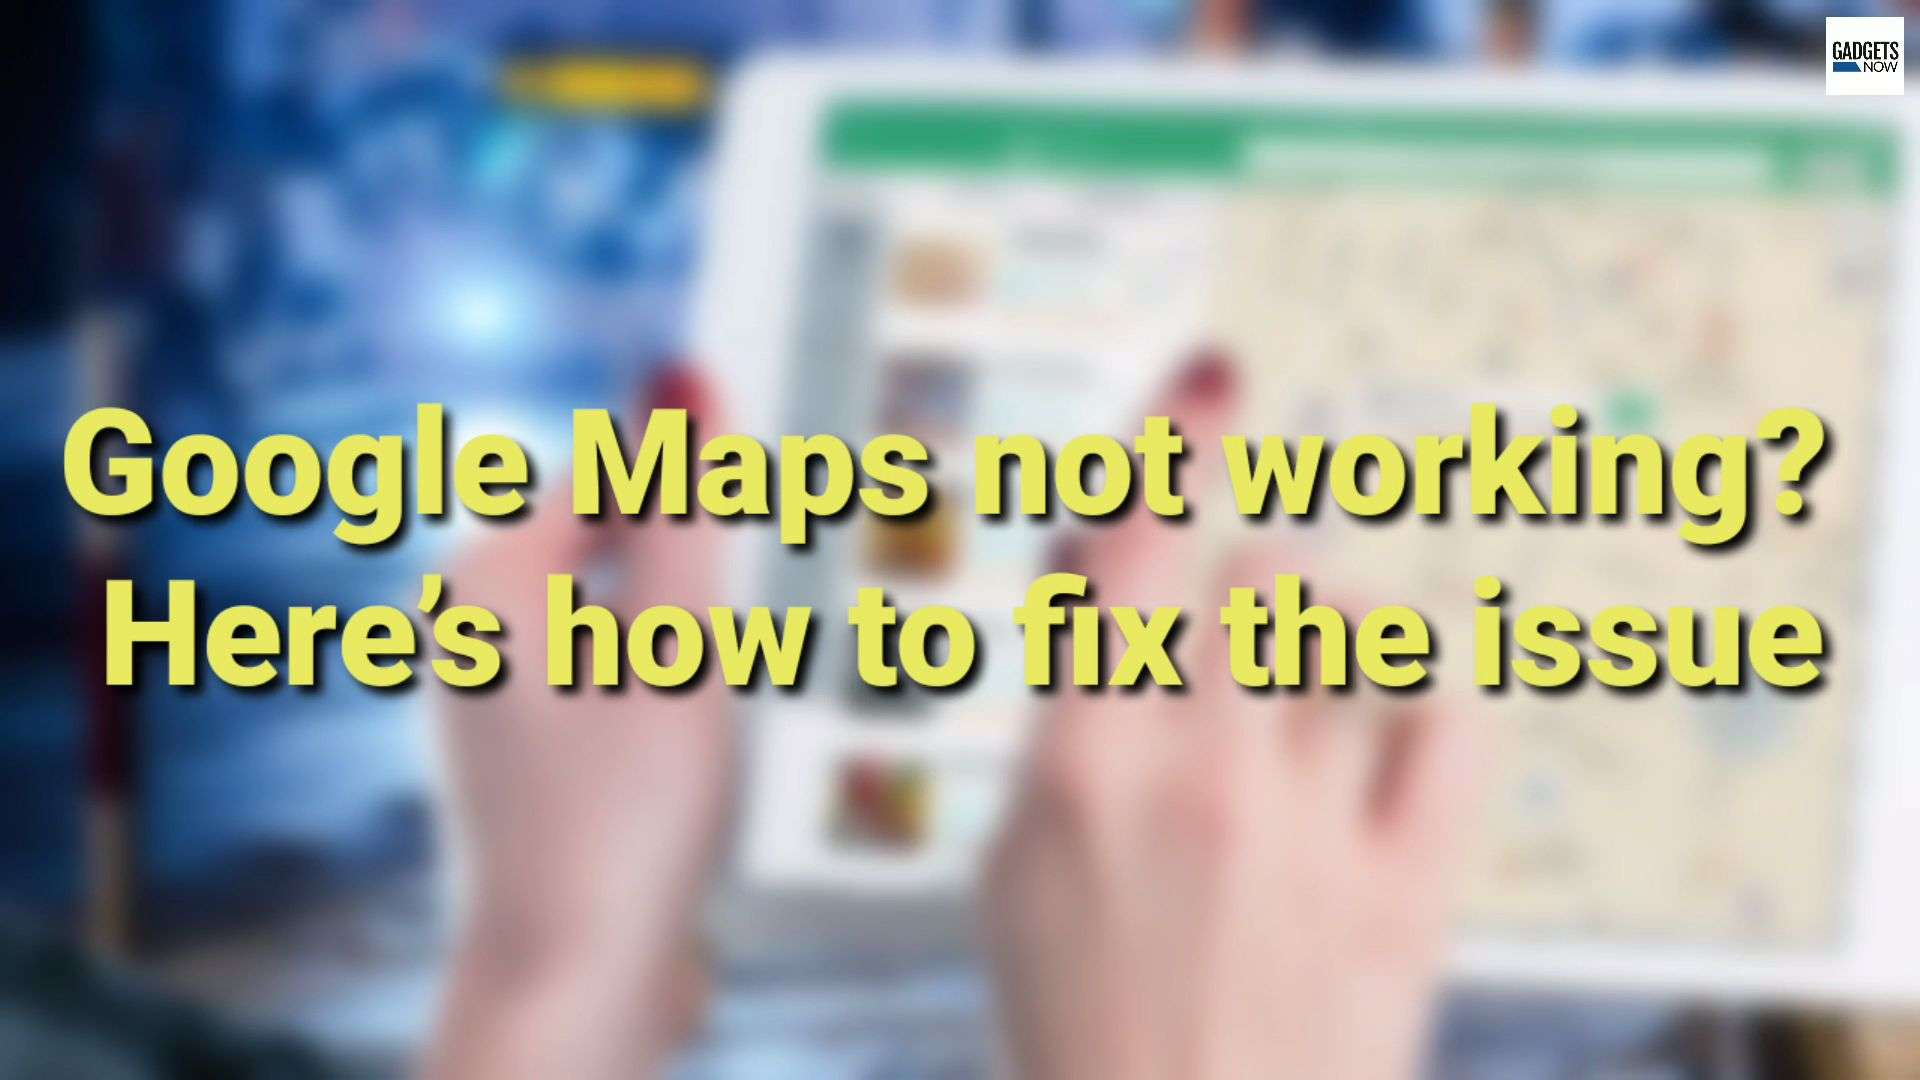 Google Maps not working? Here's how to fix the issue